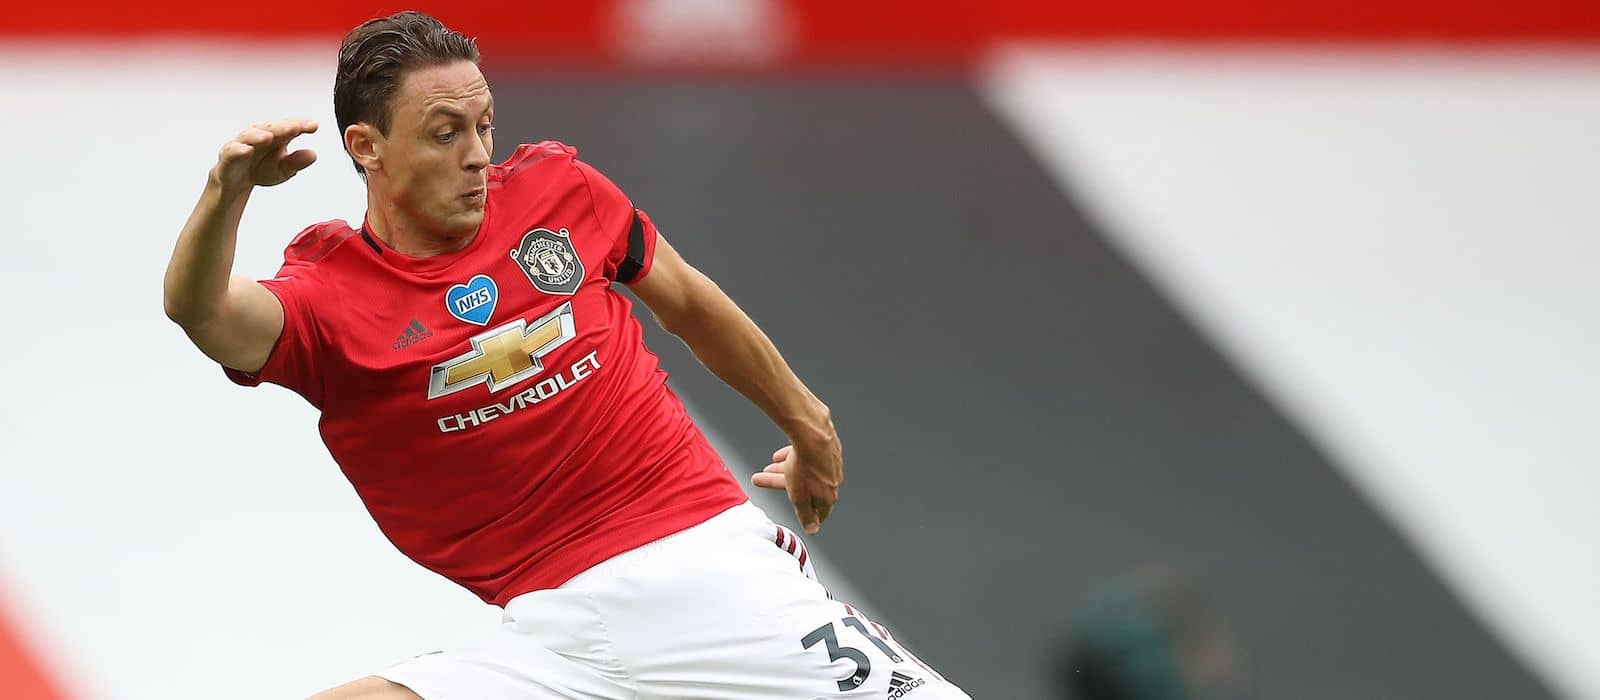 Manchester United fans react to disappointing Nemanja Matic performance vs West Ham